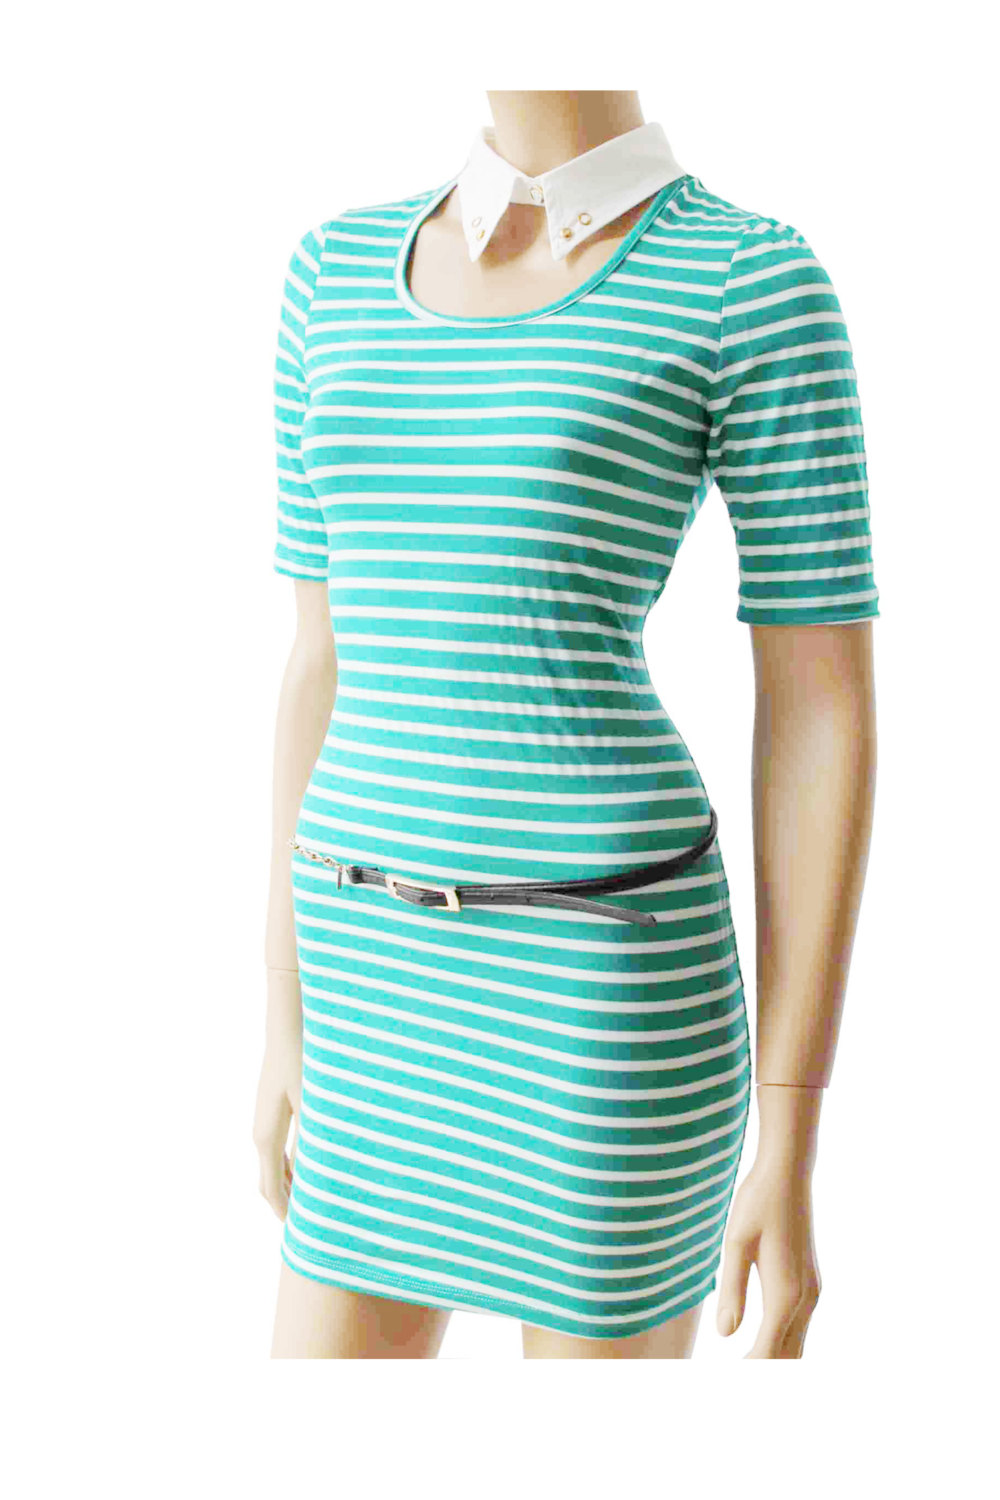 Mint and white/ cotton / women's Striped casual /mini dress/ tunic